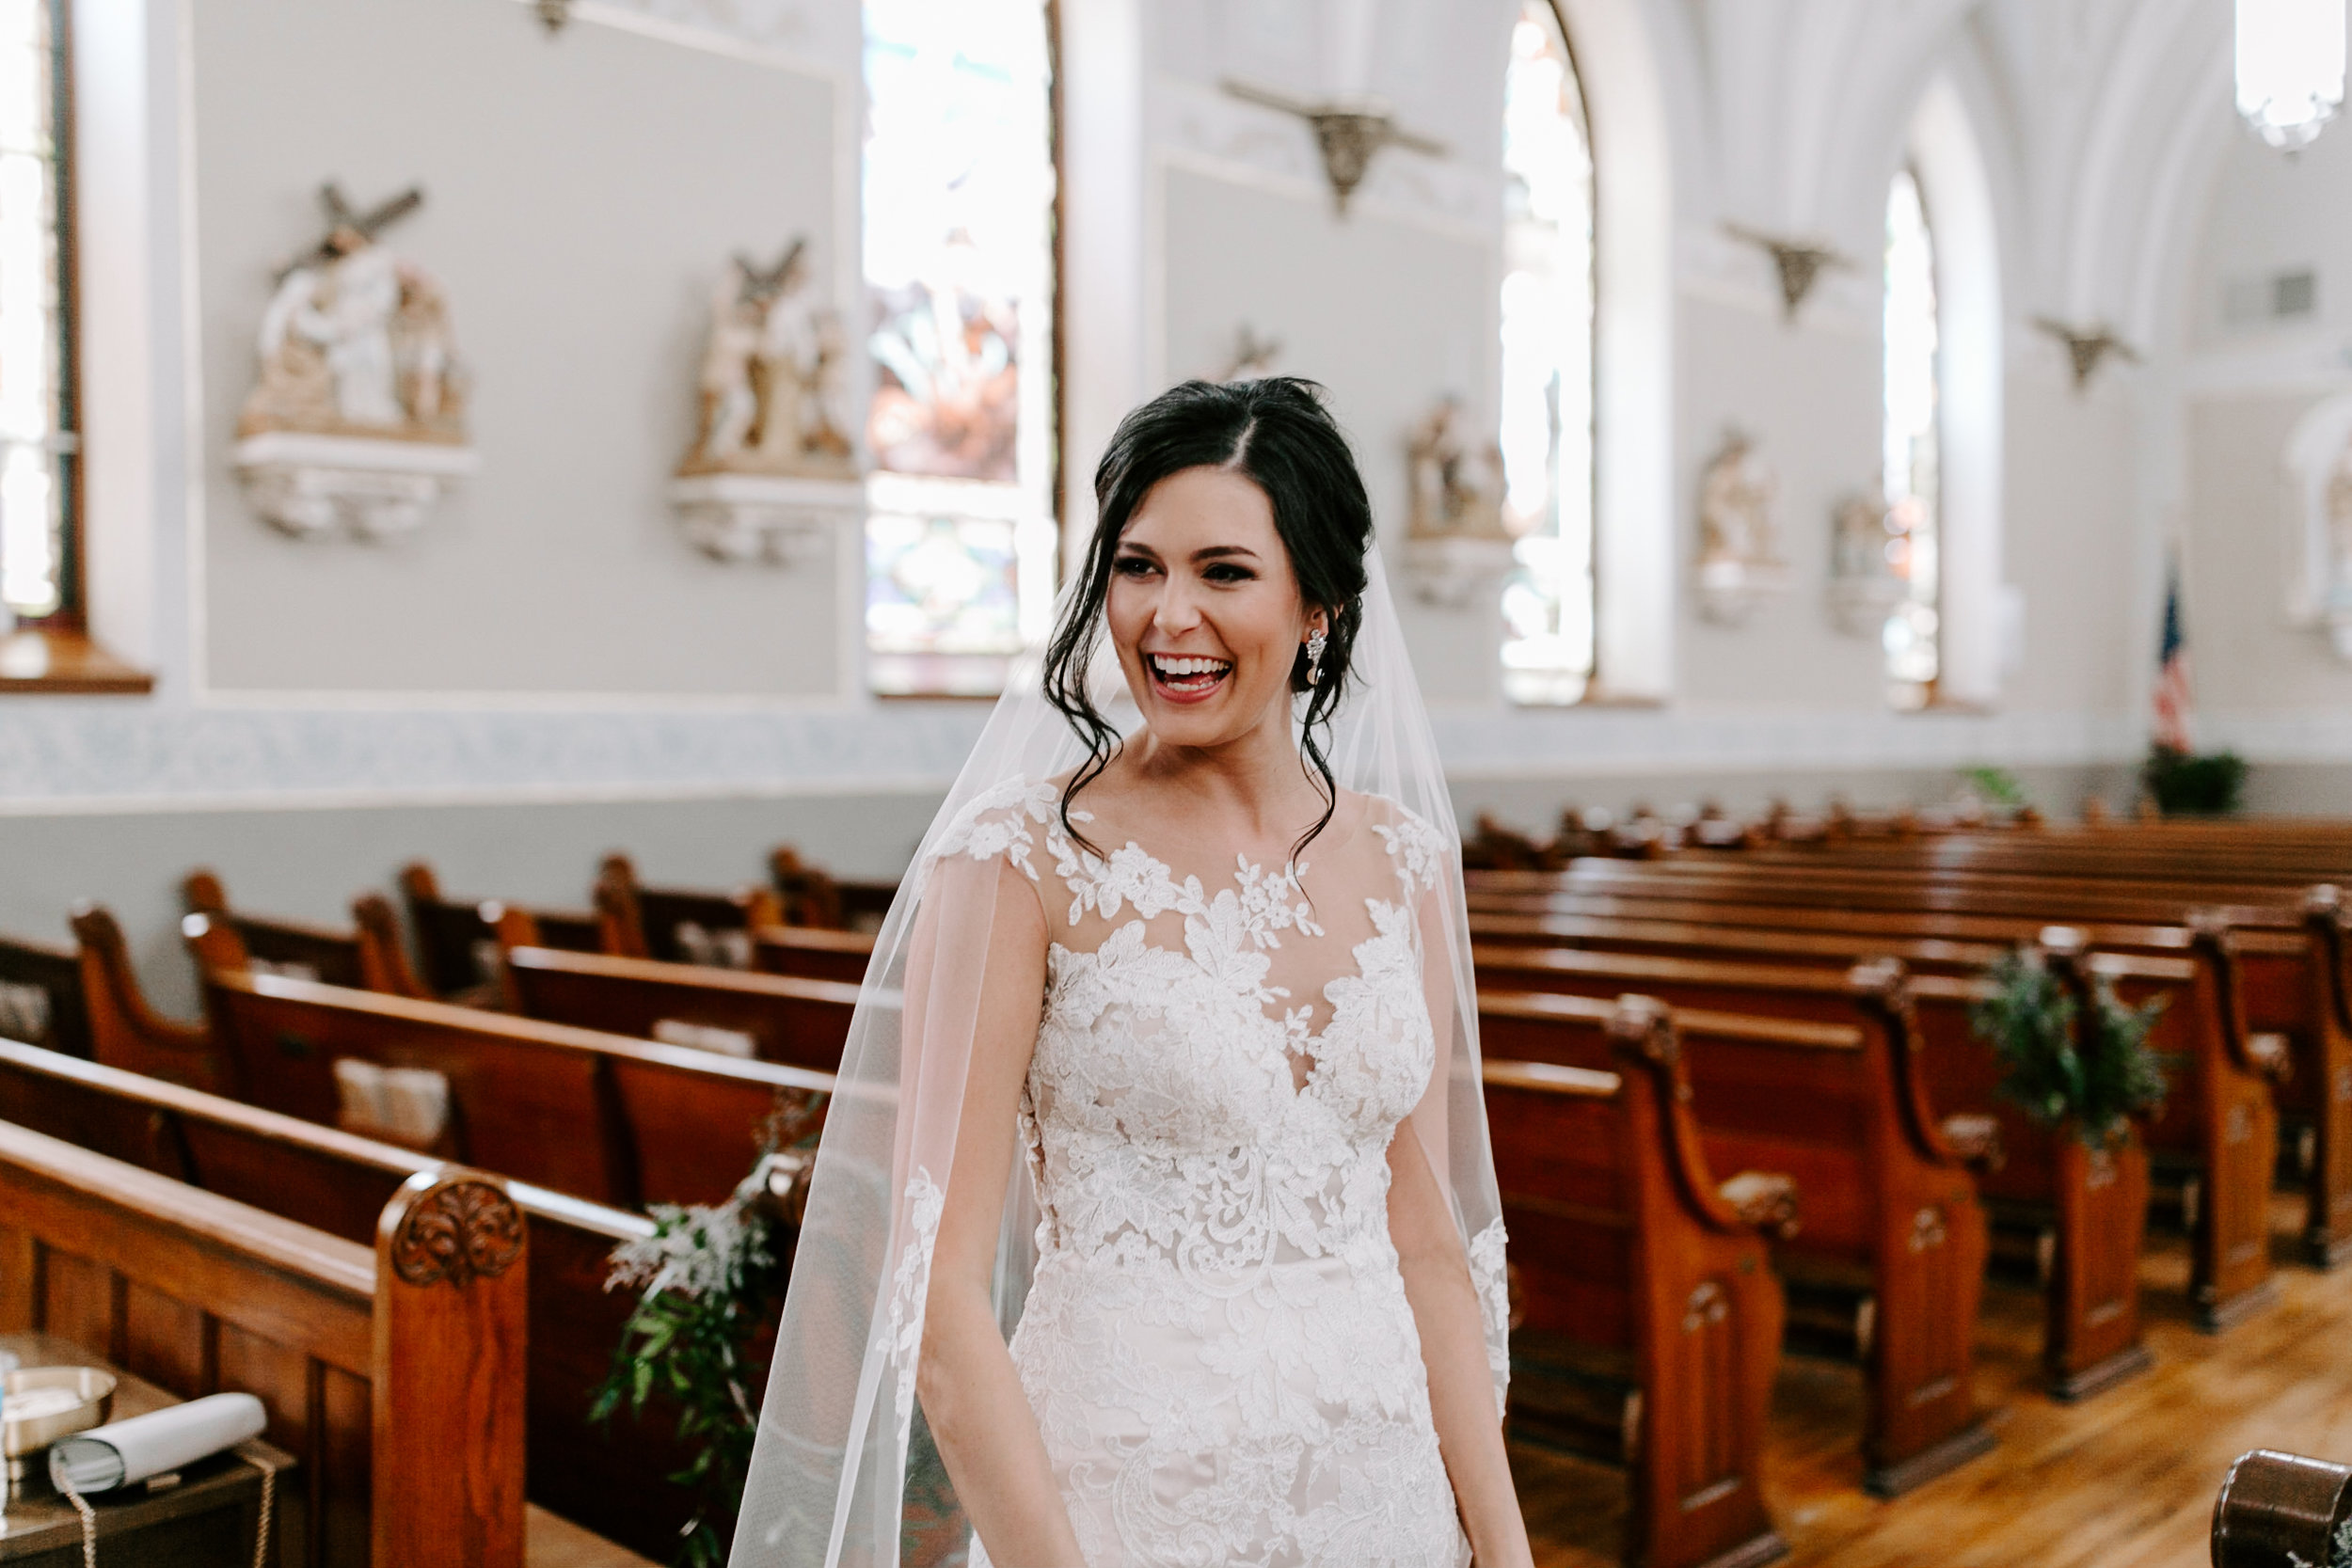 grace-t-photography-iowa-wedding-photographer-desmoines-iowa-13.jpg